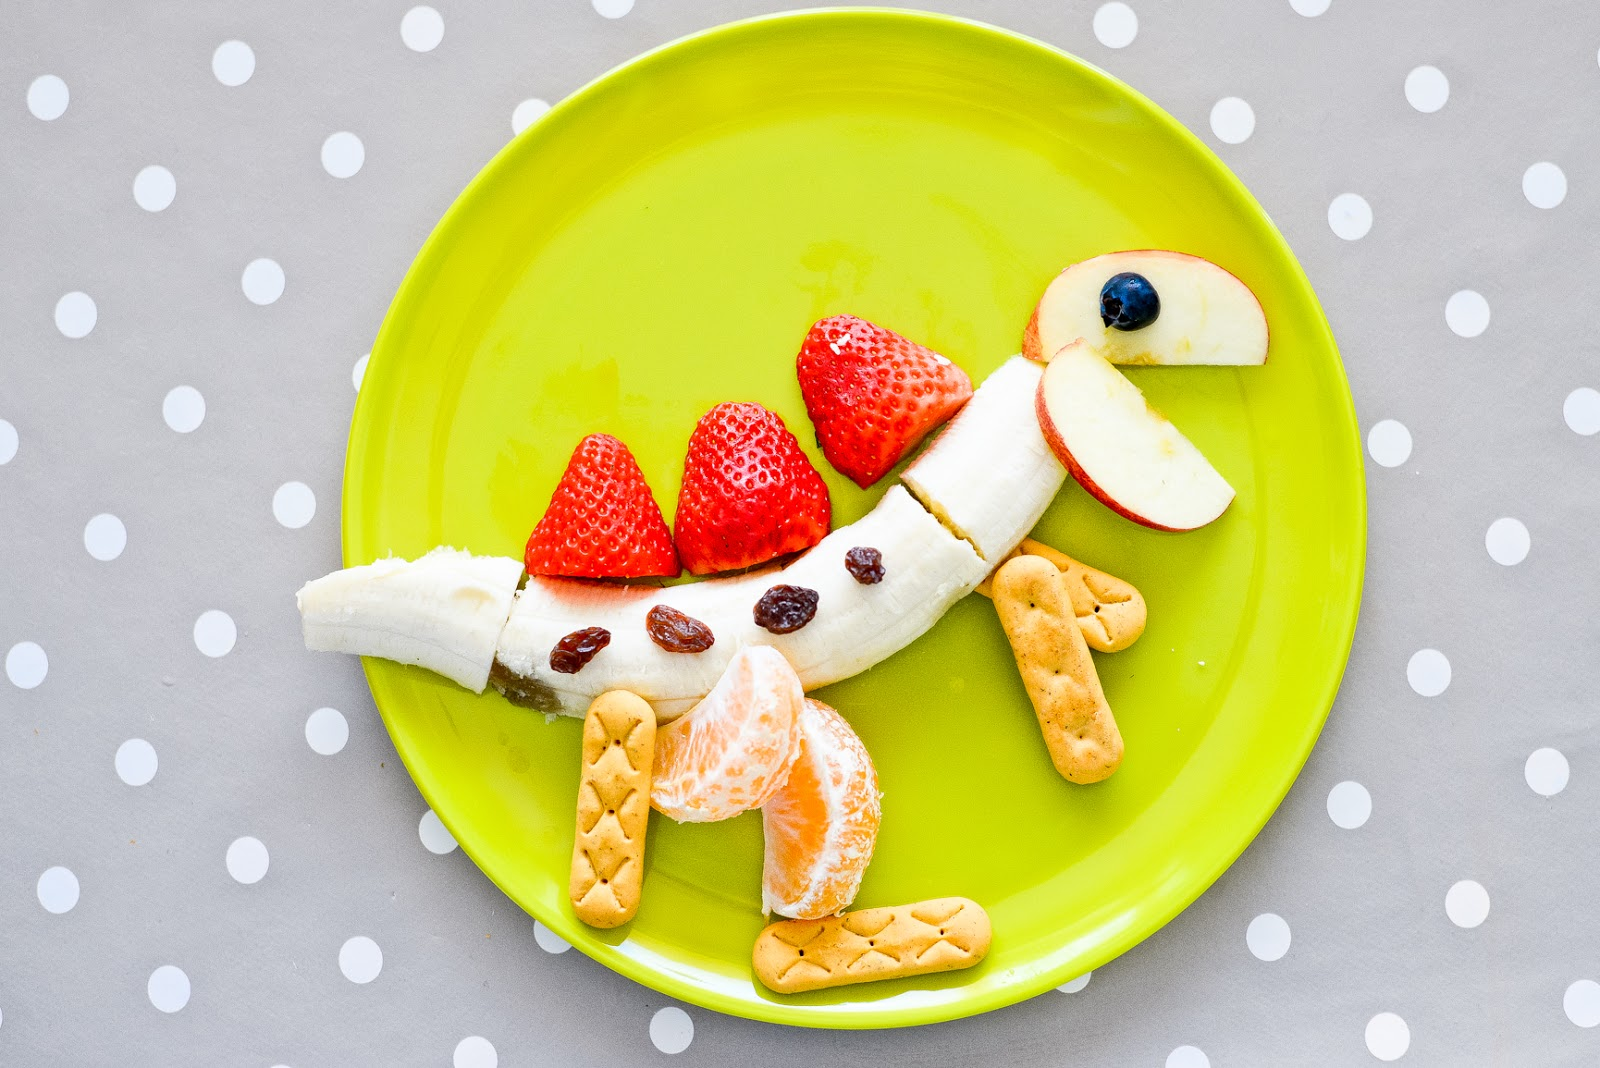 dinosaur snack idea, fun snack ideas for kids, toddler snack ideas, toddler snacks, healthy snacks for kids,